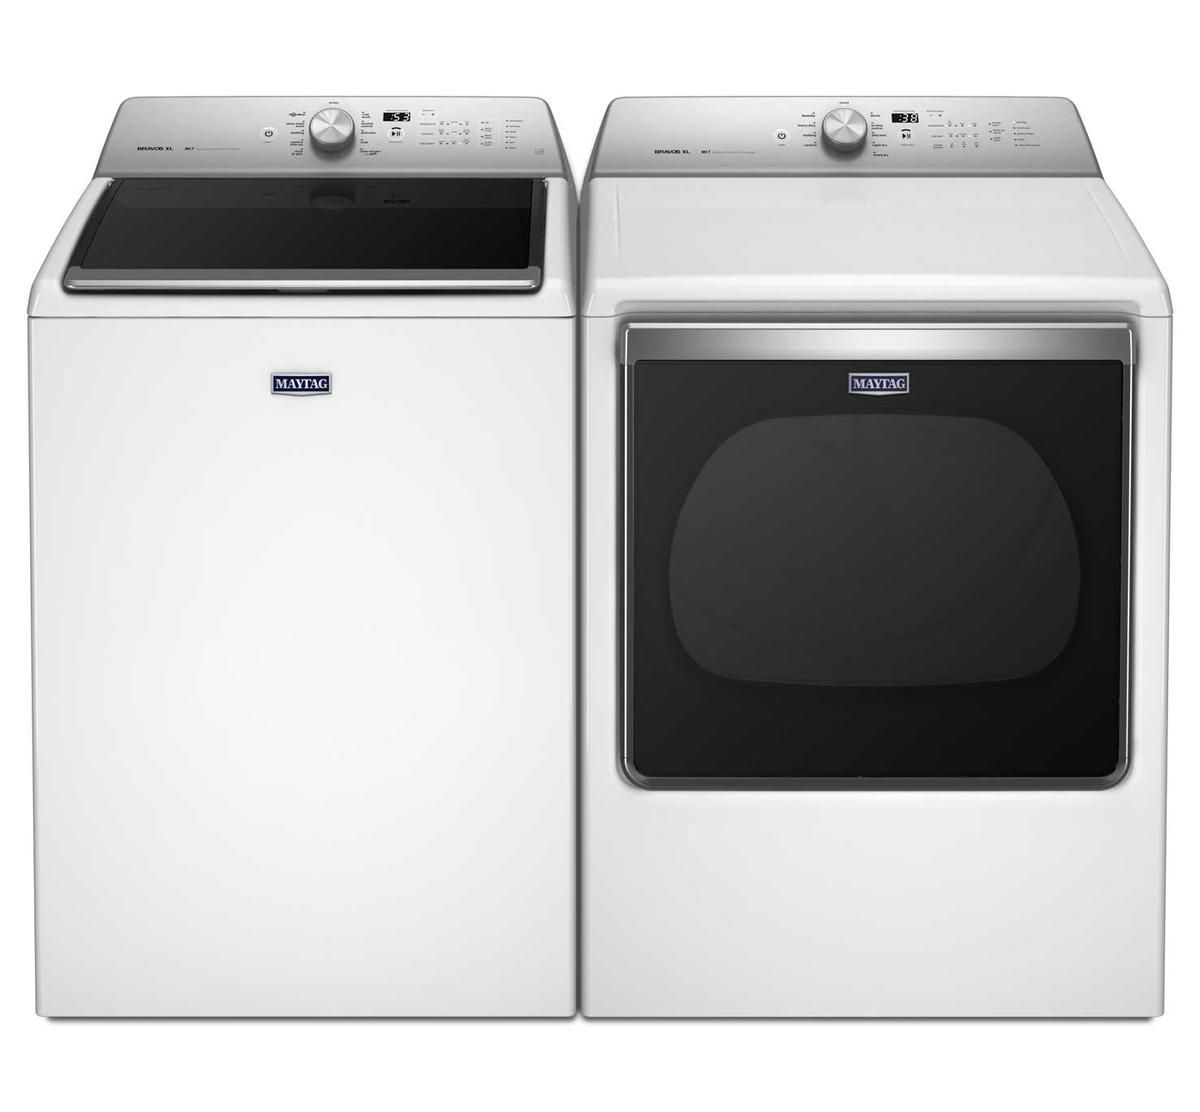 Maytag Super Capacity Top Load Washer & Dryer Pair | Badcock Home ...